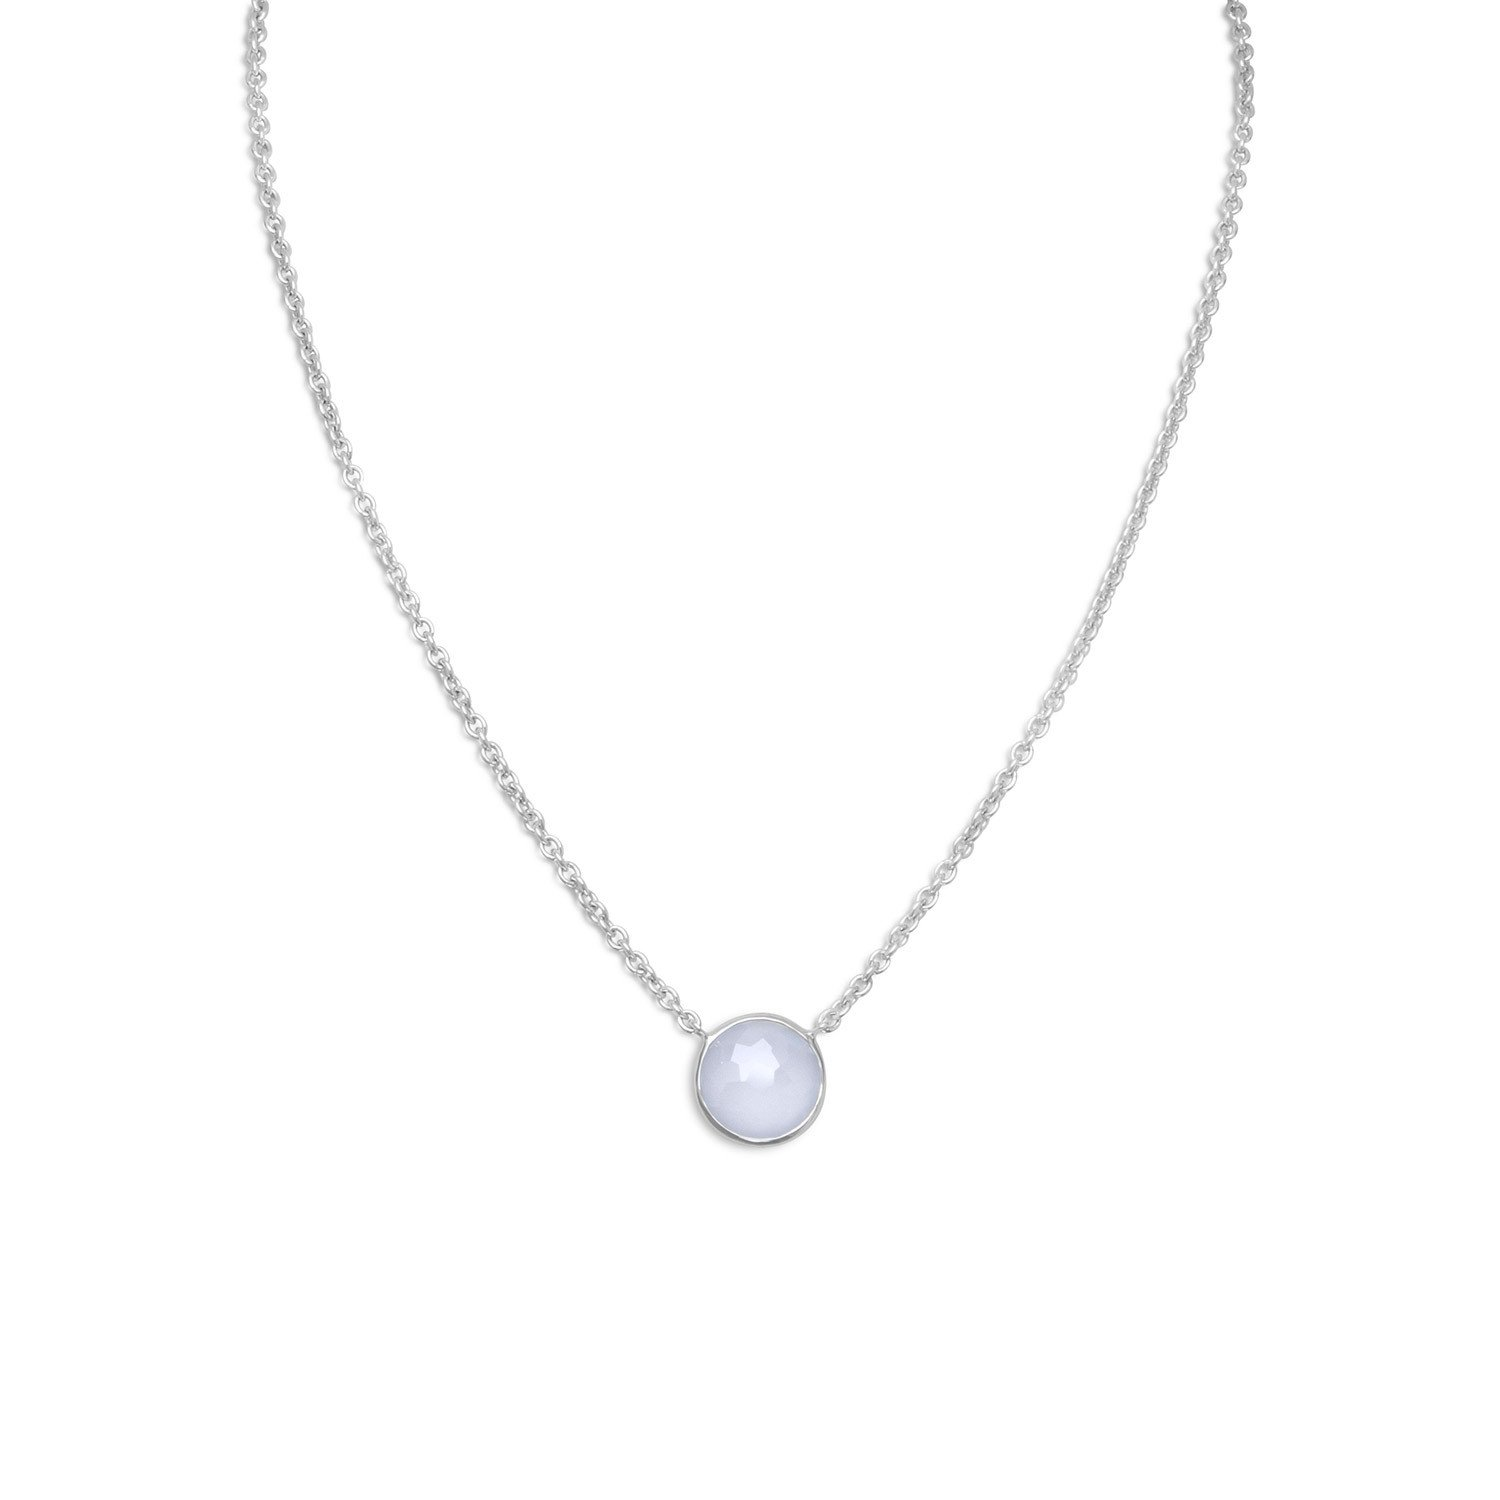 16″ + 2″ Freeform Faceted Blue Chalcedony Necklace